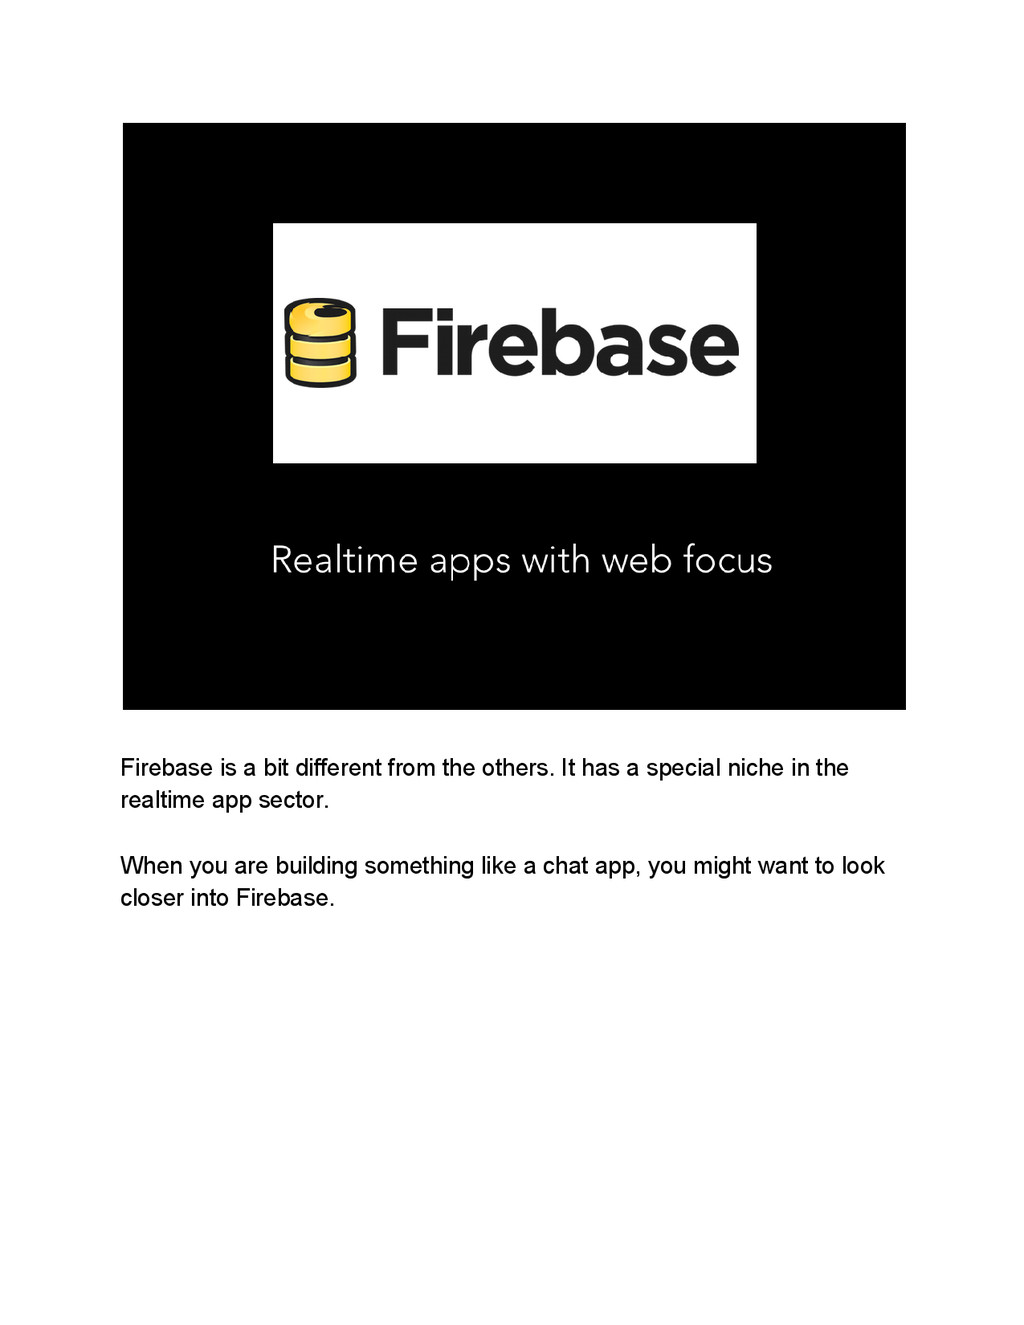 Firebase is a bit different from the others. It...